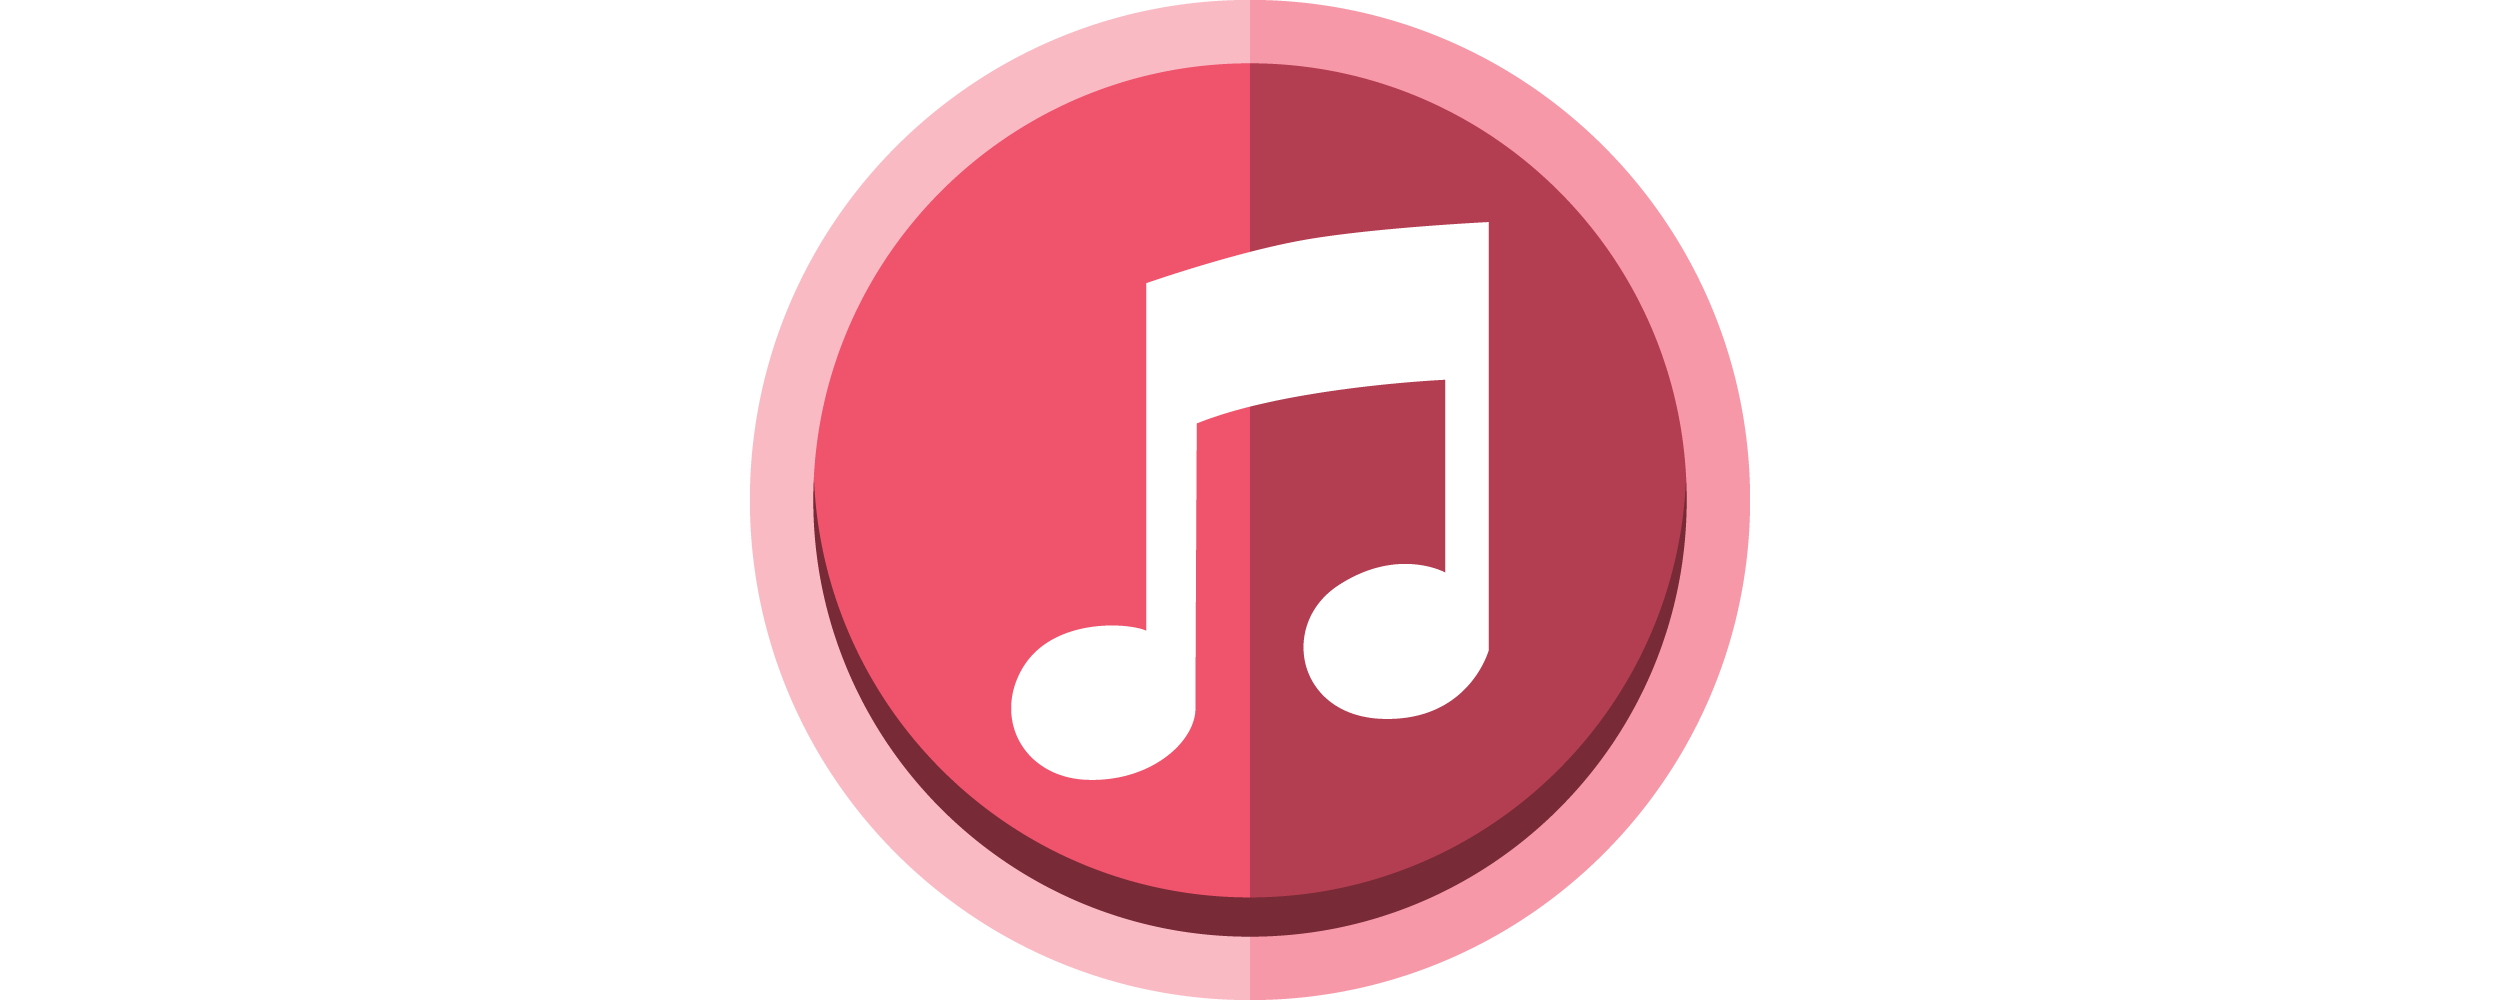 iTunes for your iPhone. -